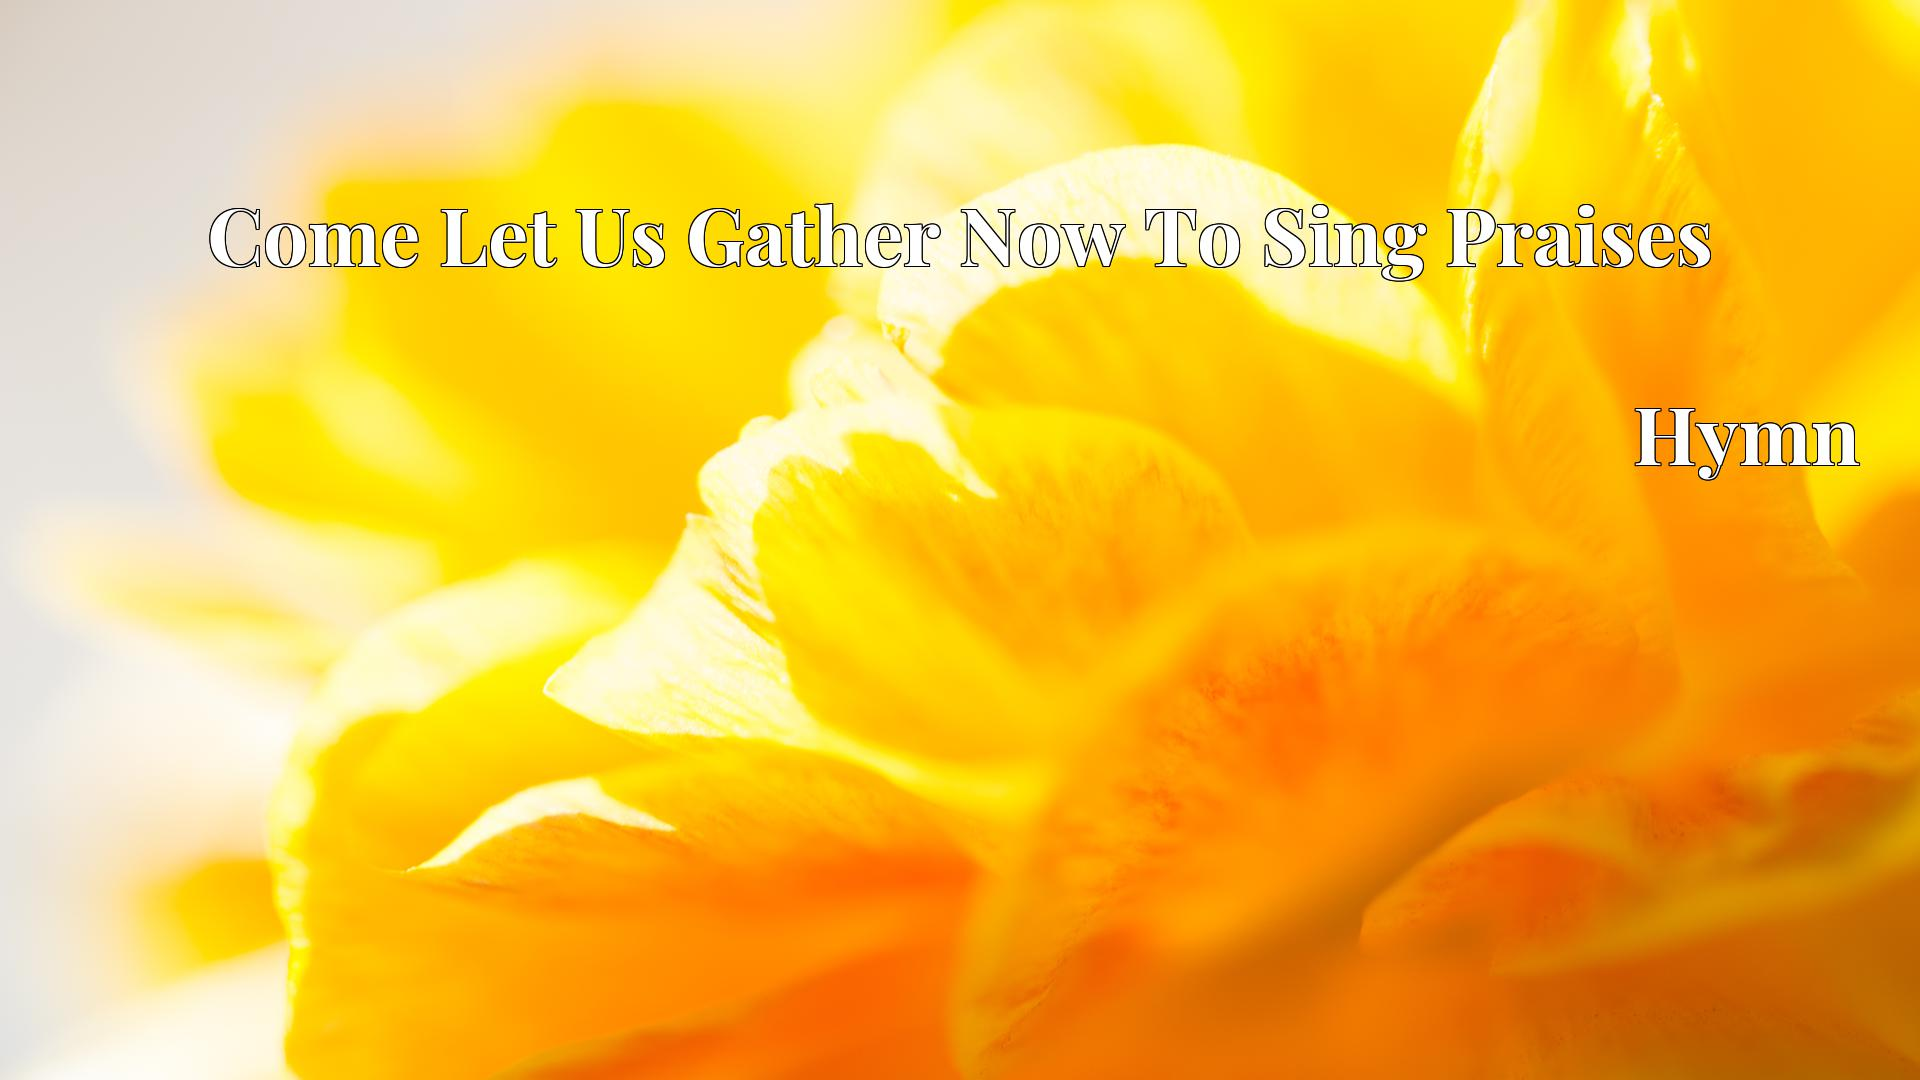 Come Let Us Gather Now To Sing Praises - Hymn